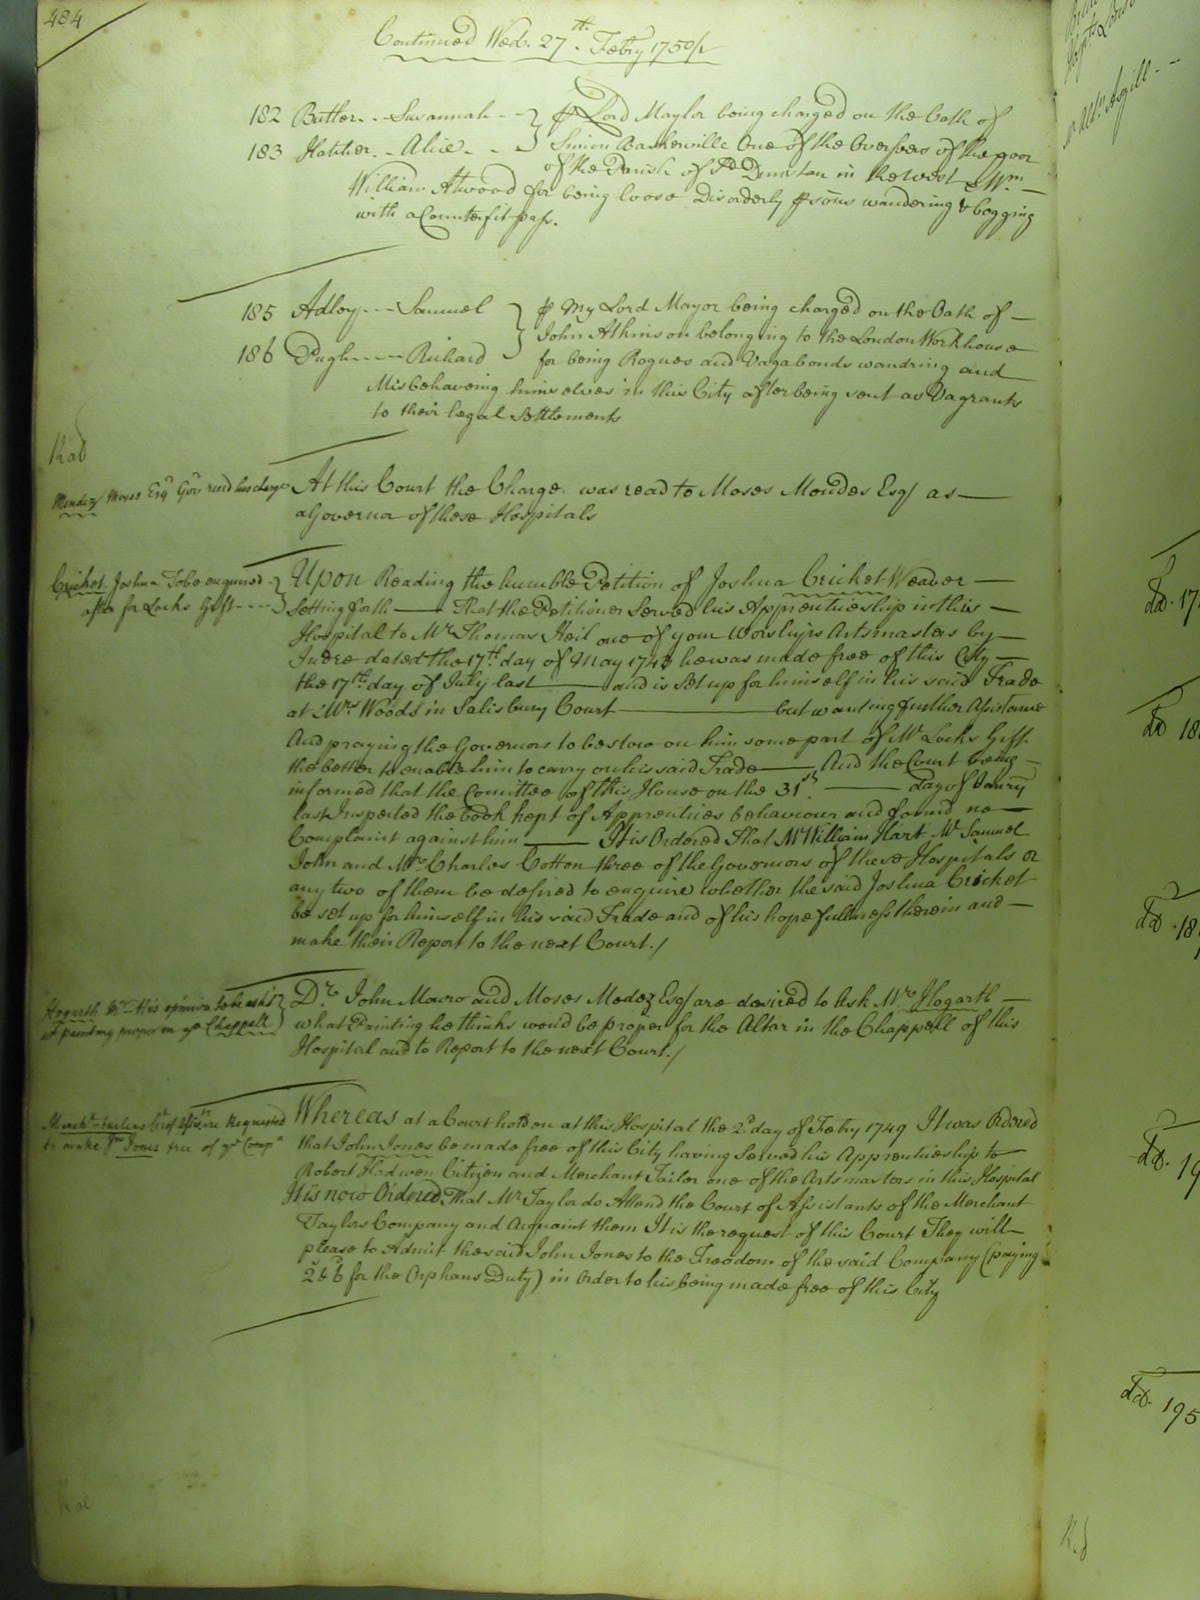 A minute of the Court of Bridewell, 27 February 1750/1, recording the conviction of two vagrants from the London Workhouse